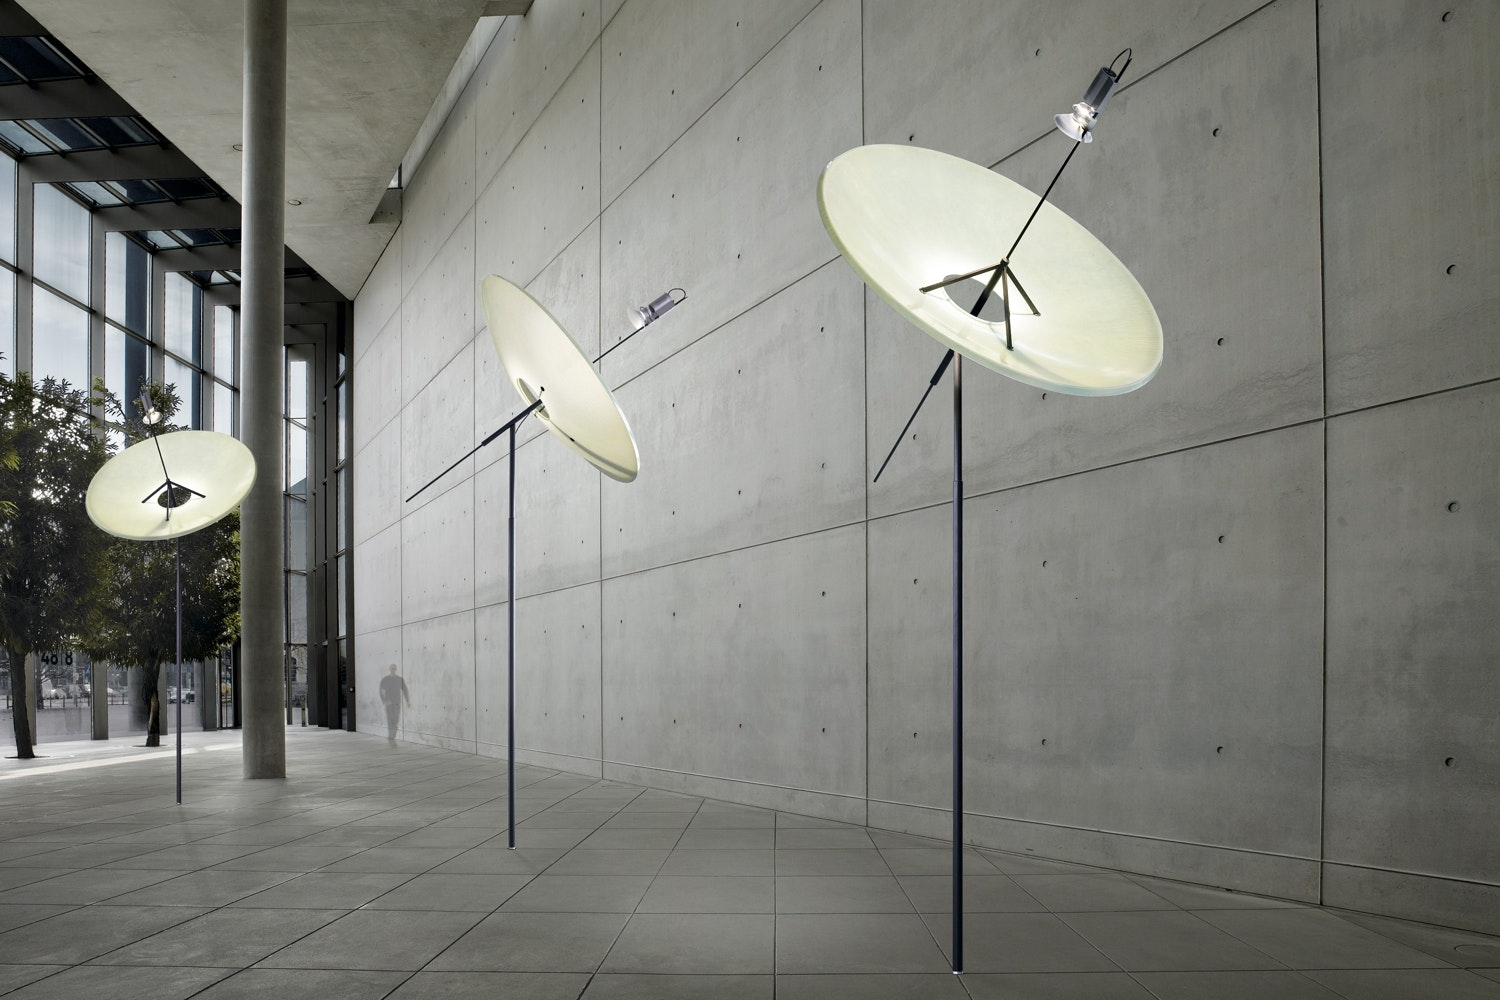 Big Dish Suspension Lamp by Ingo Maurer und Team for Ingo Maurer